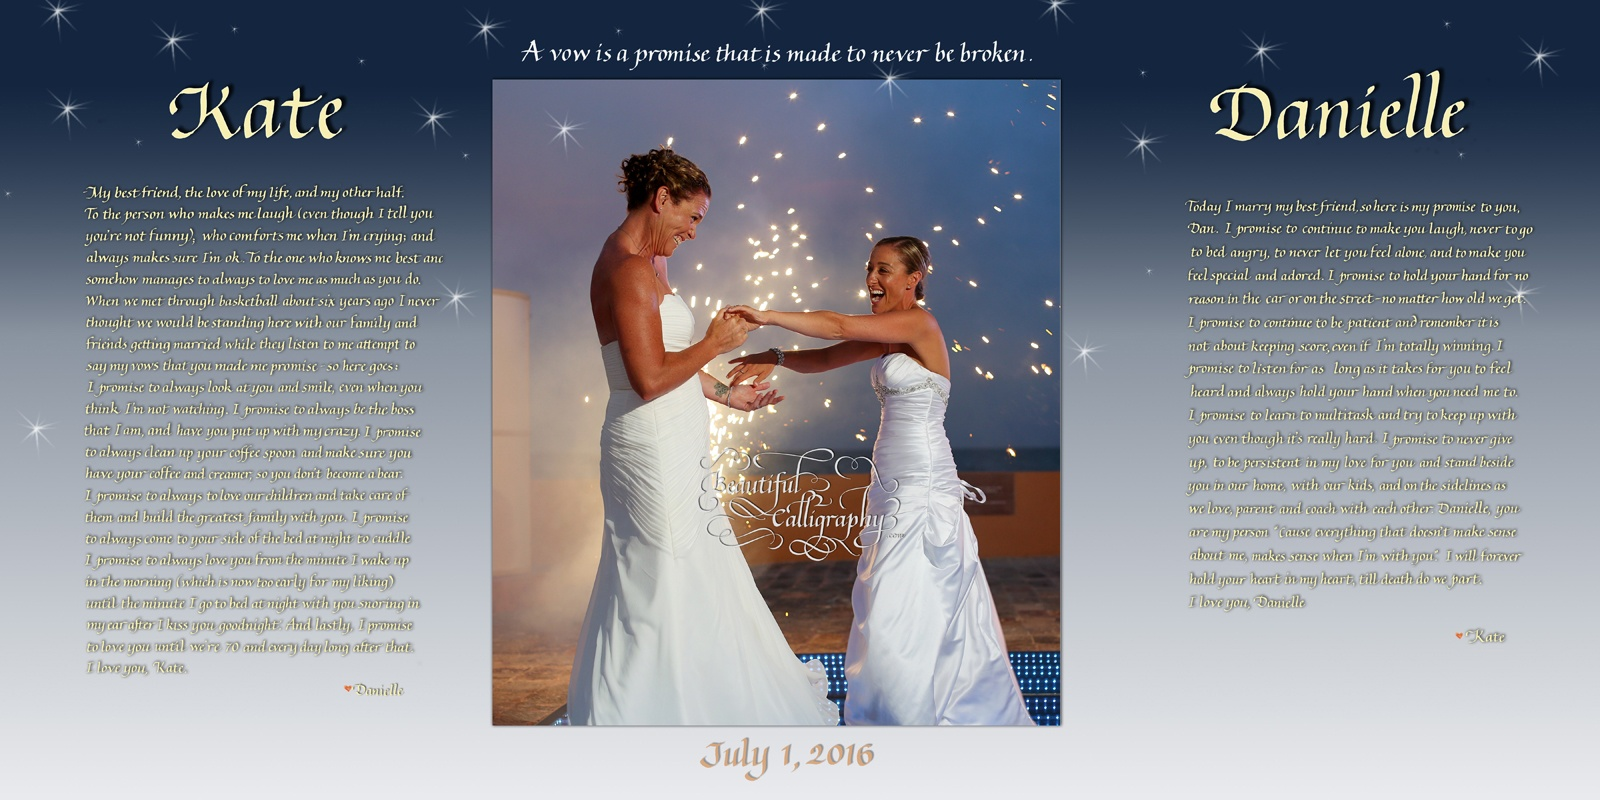 Lesbian/Gay marriage vows with happy photo of two brides